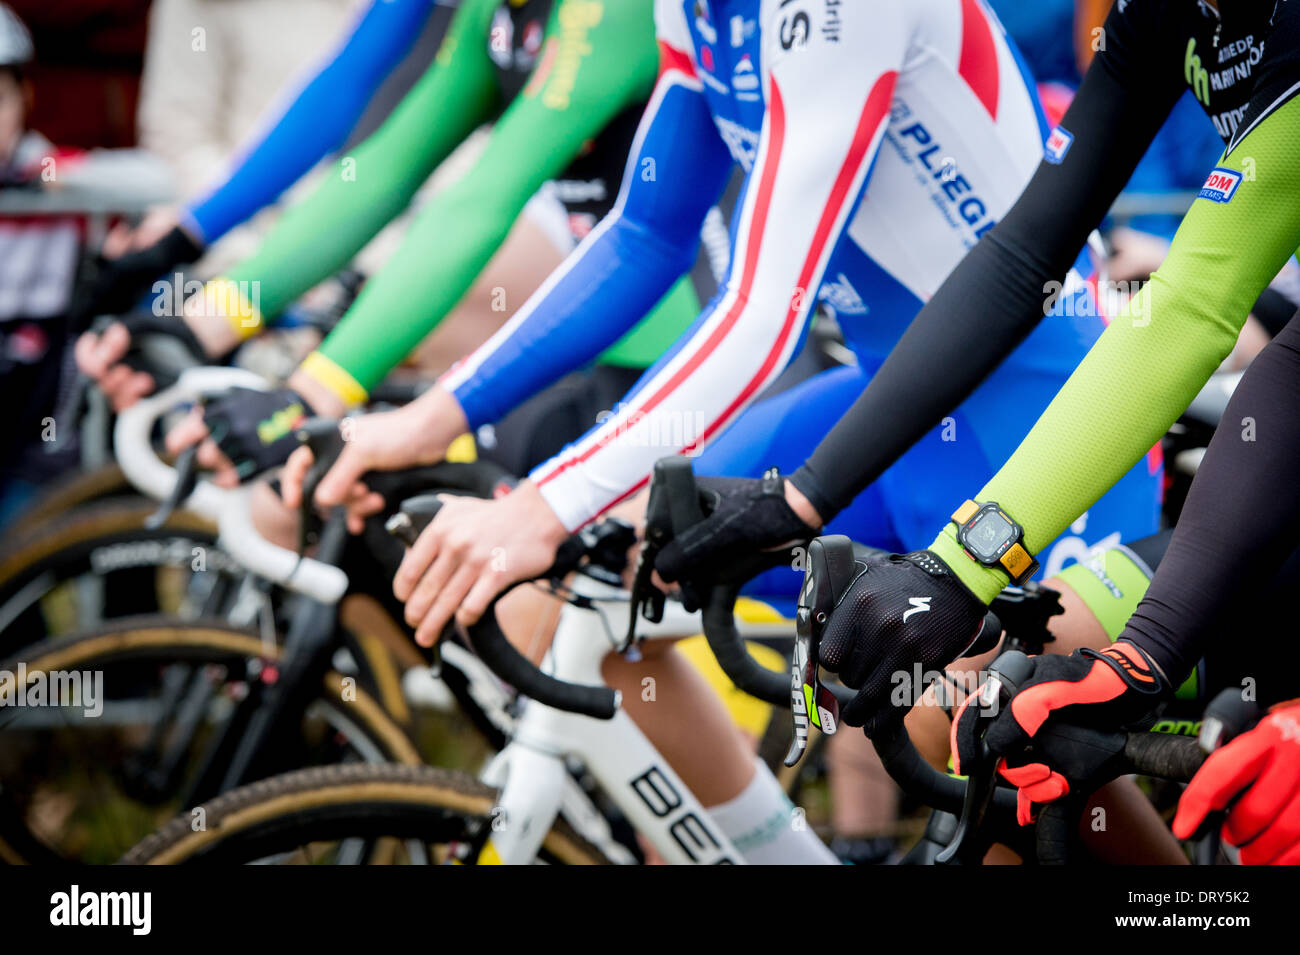 Hands on the handlebars before the start of a cyclocross - Stock Image